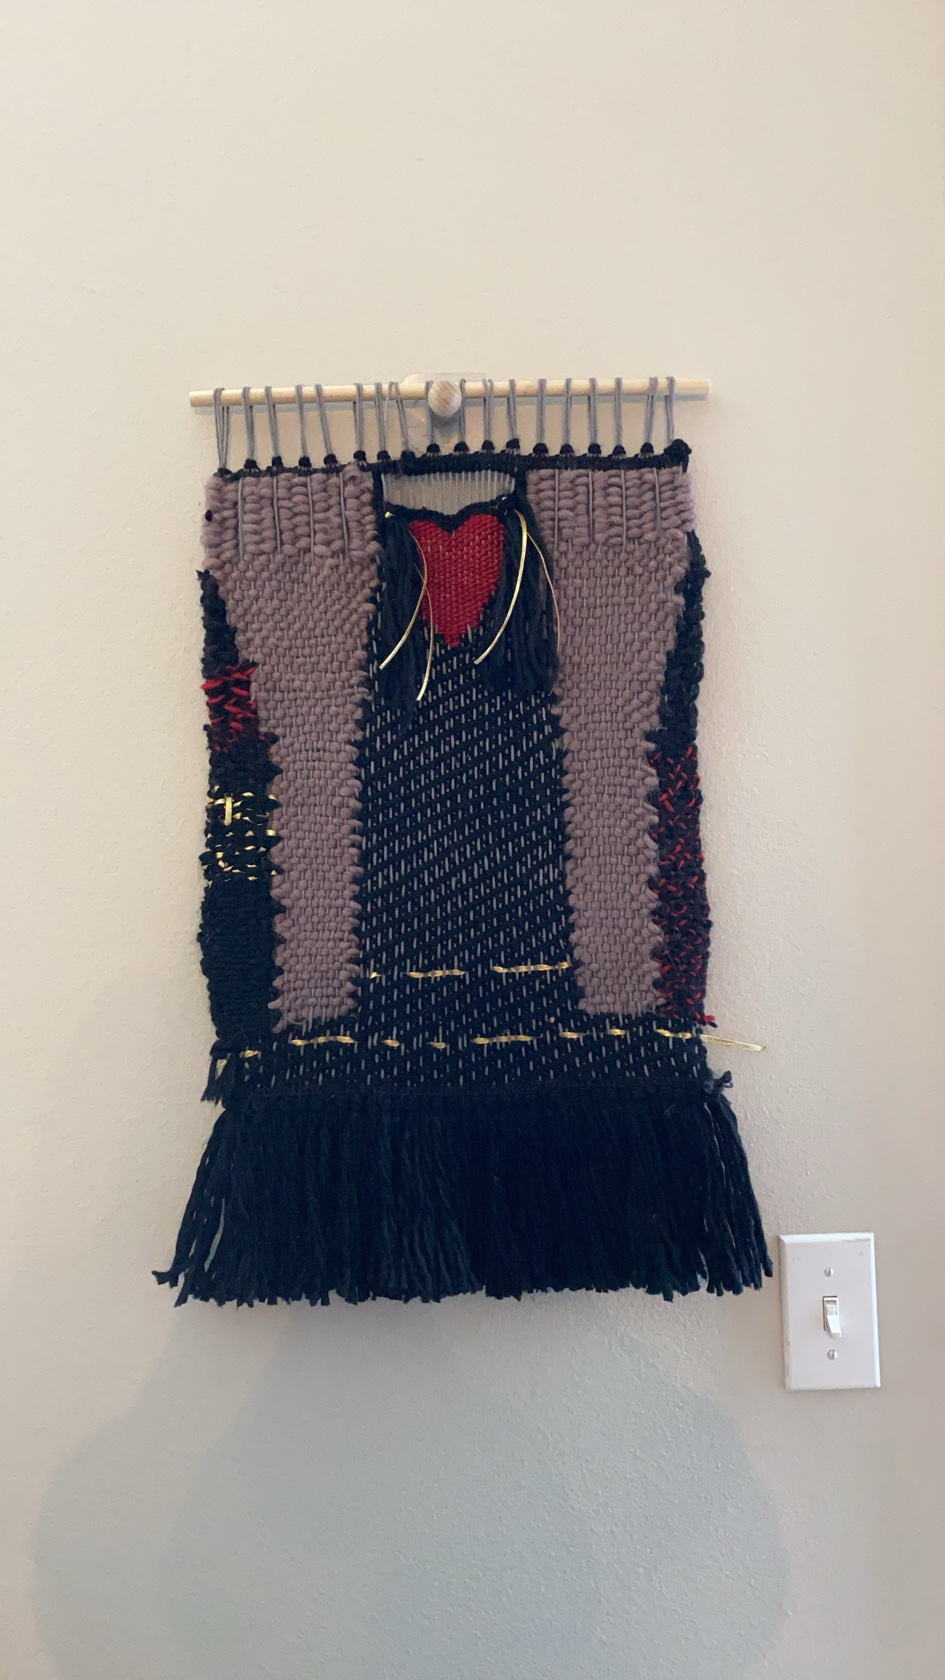 a weaving with fists of color raised